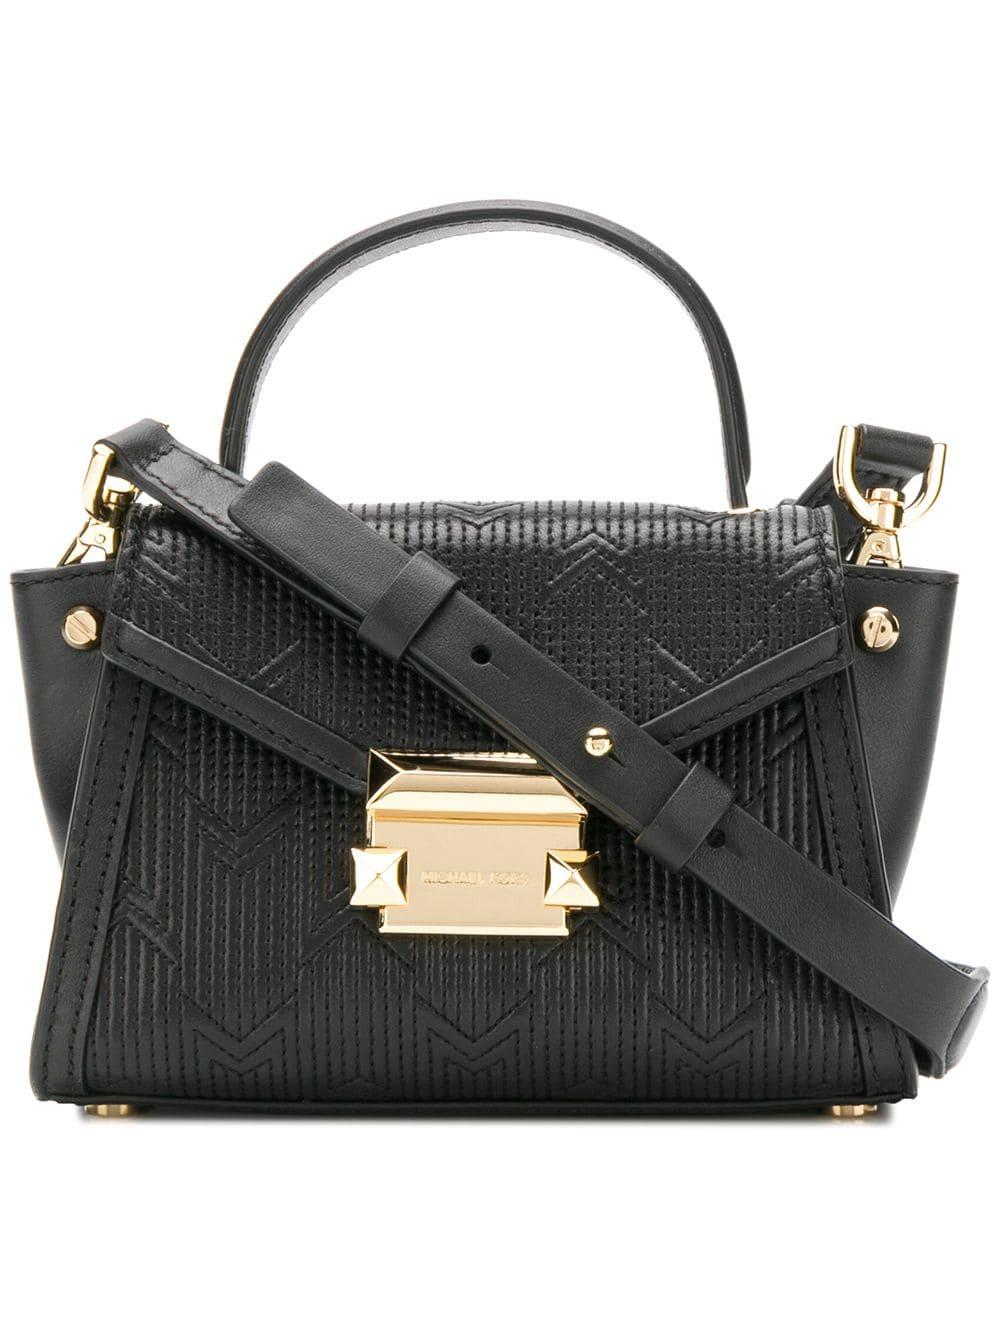 4f74a7445b7e Lyst - MICHAEL Michael Kors Whitney Leather Shoulder Bag in Black ...